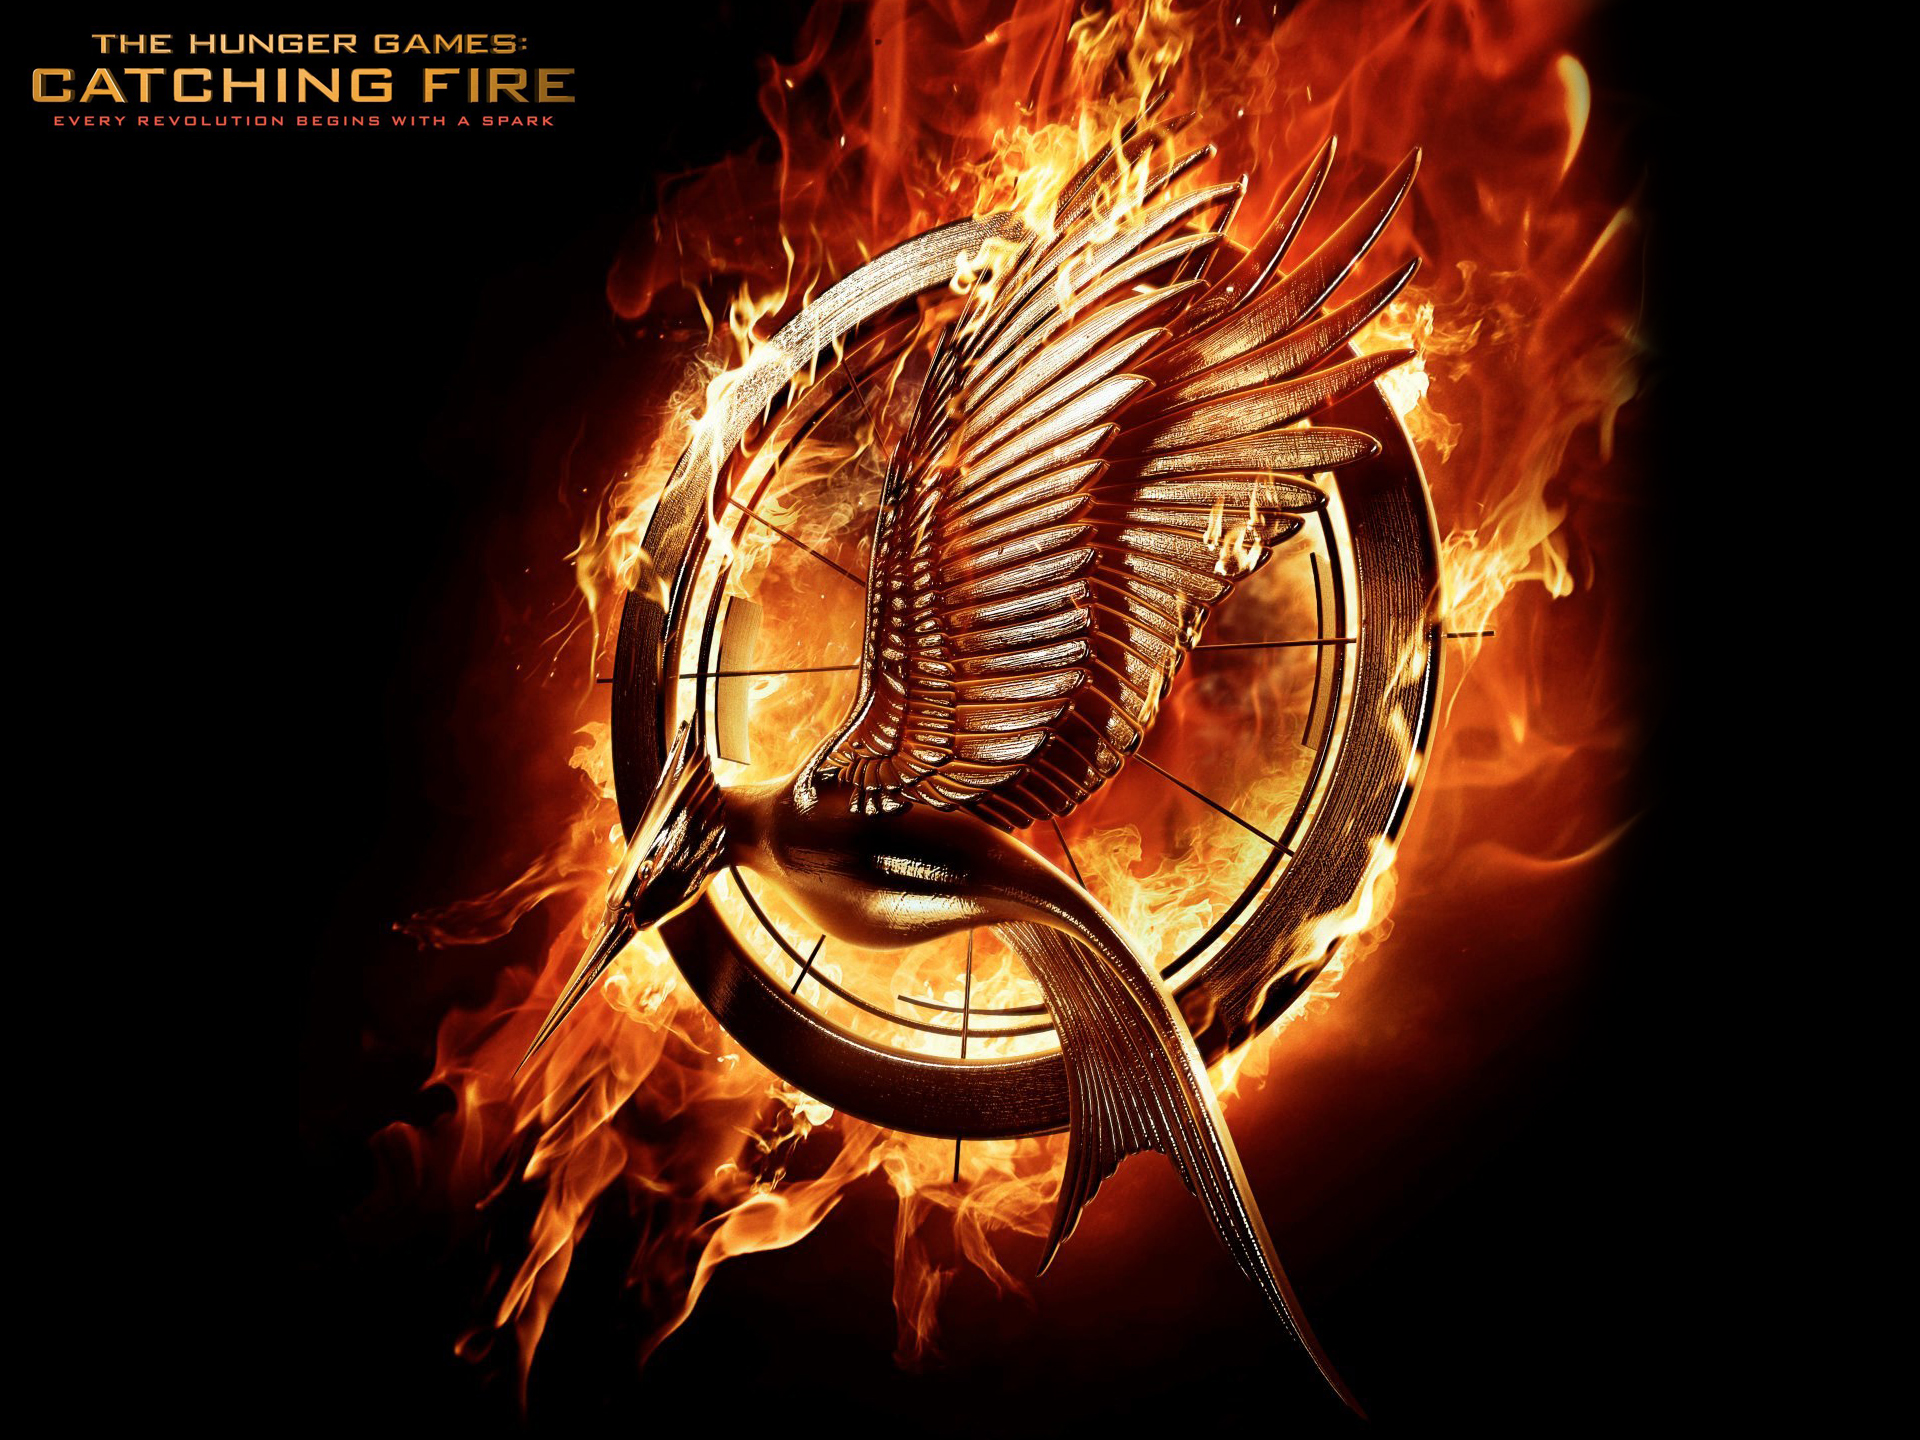 The Hunger Games Catching Fire Hd Wallpaper Background Image